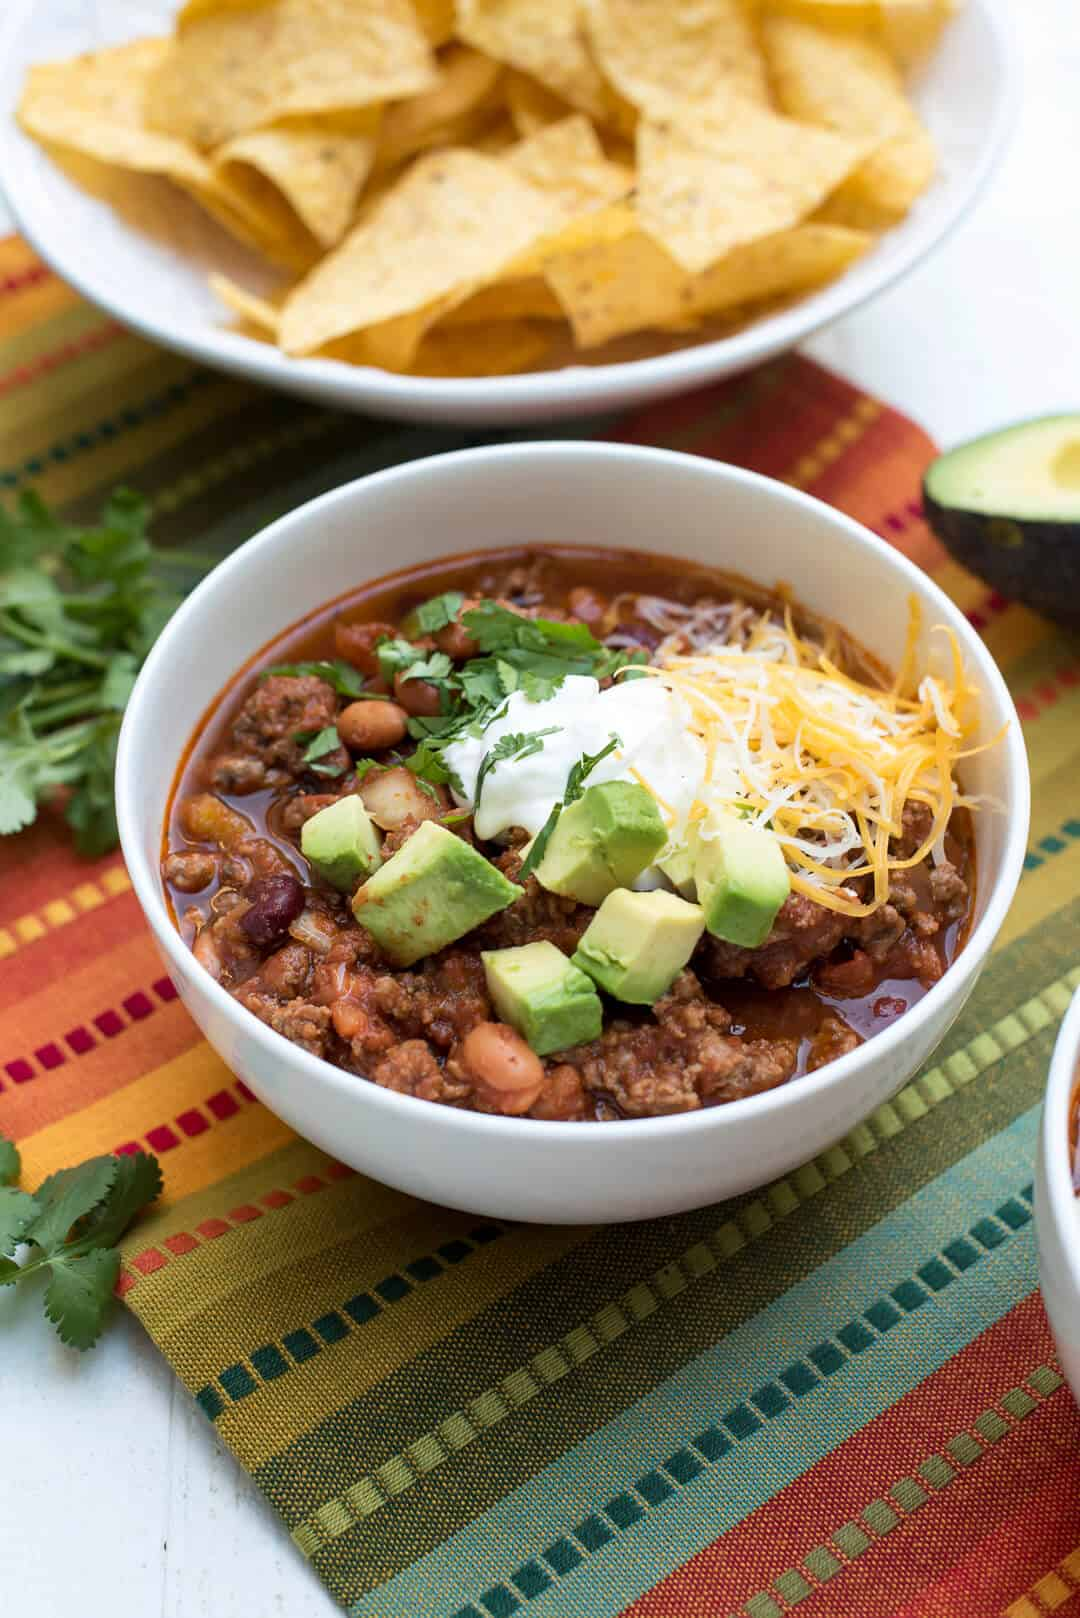 With just 15 minutes of prep time you'll have this beefy Slow Cooker Salsa Chili simmering away for a fun game day meal or no-fuss dinner on a busy day.